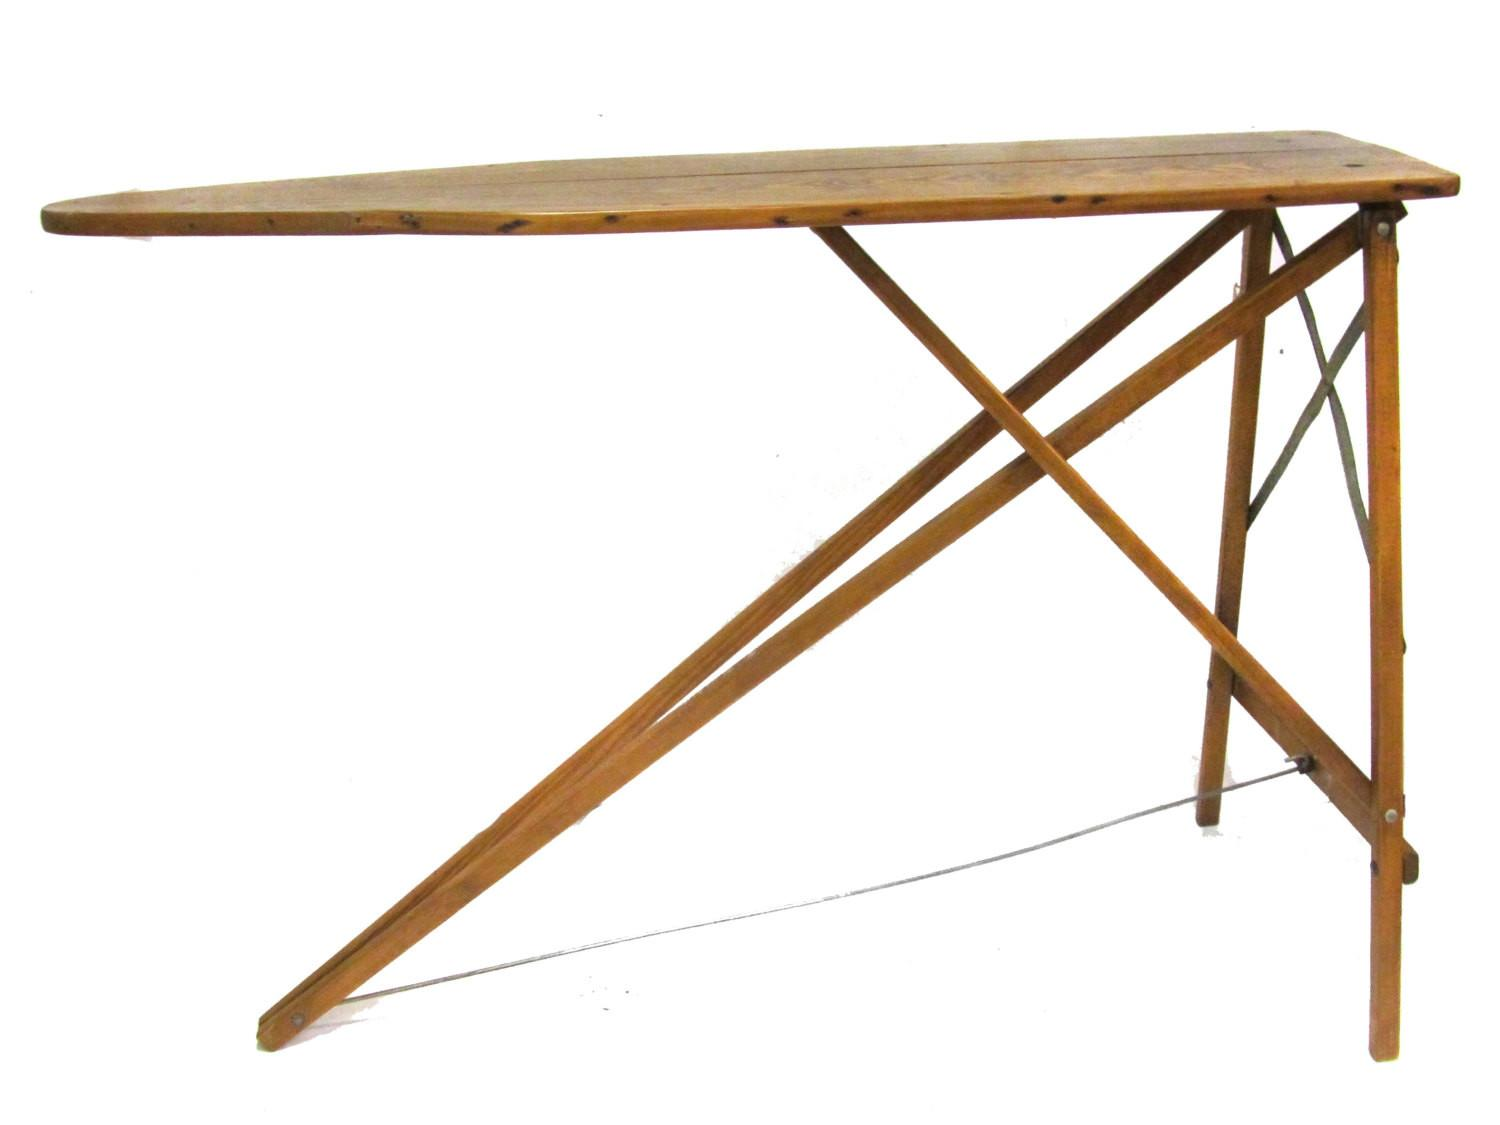 Antique Wood Ironing Board Sofa Table Industrial Decor